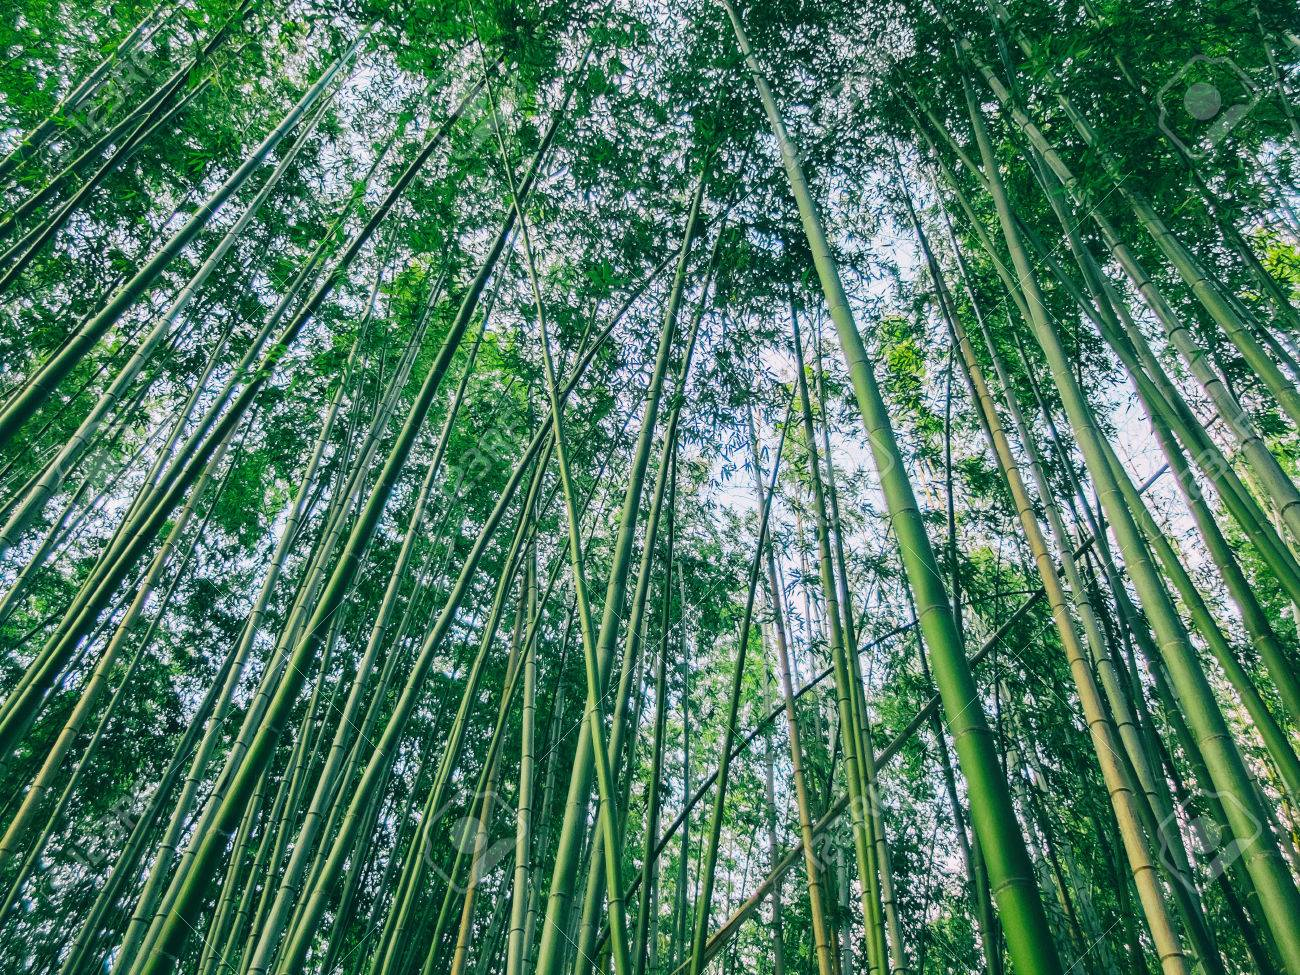 Thicket Of Lush Green Bamboo Plants Looking Up From Below Into